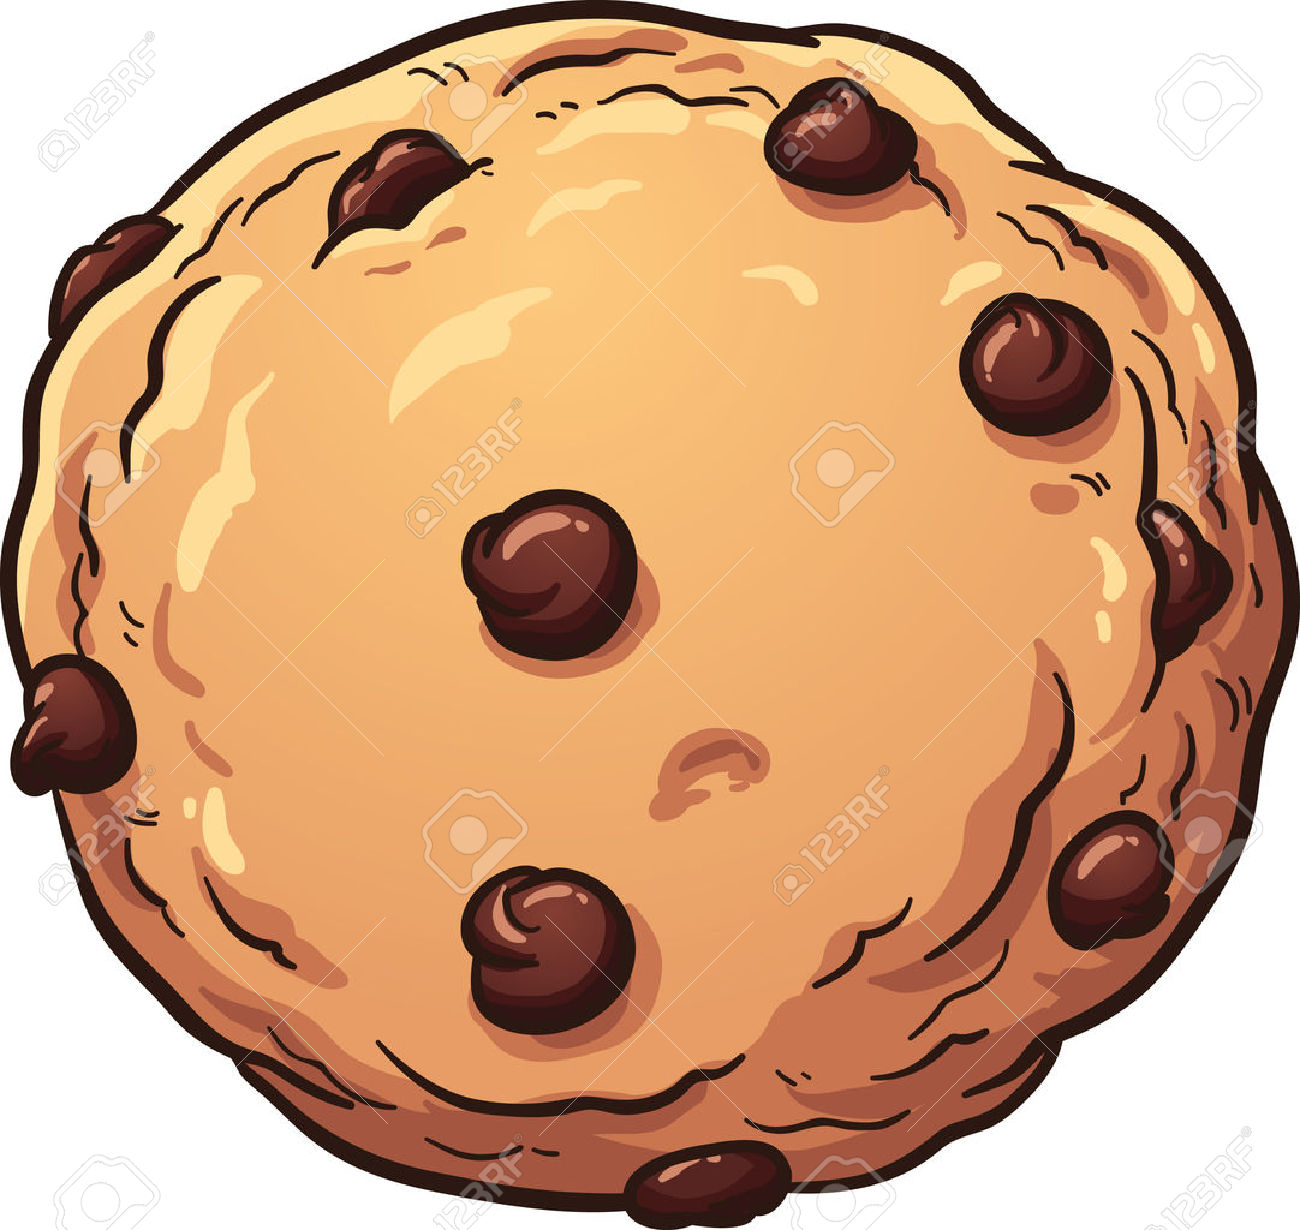 Chocolate Chip Cookie Clipart | Free download best Chocolate Chip ...